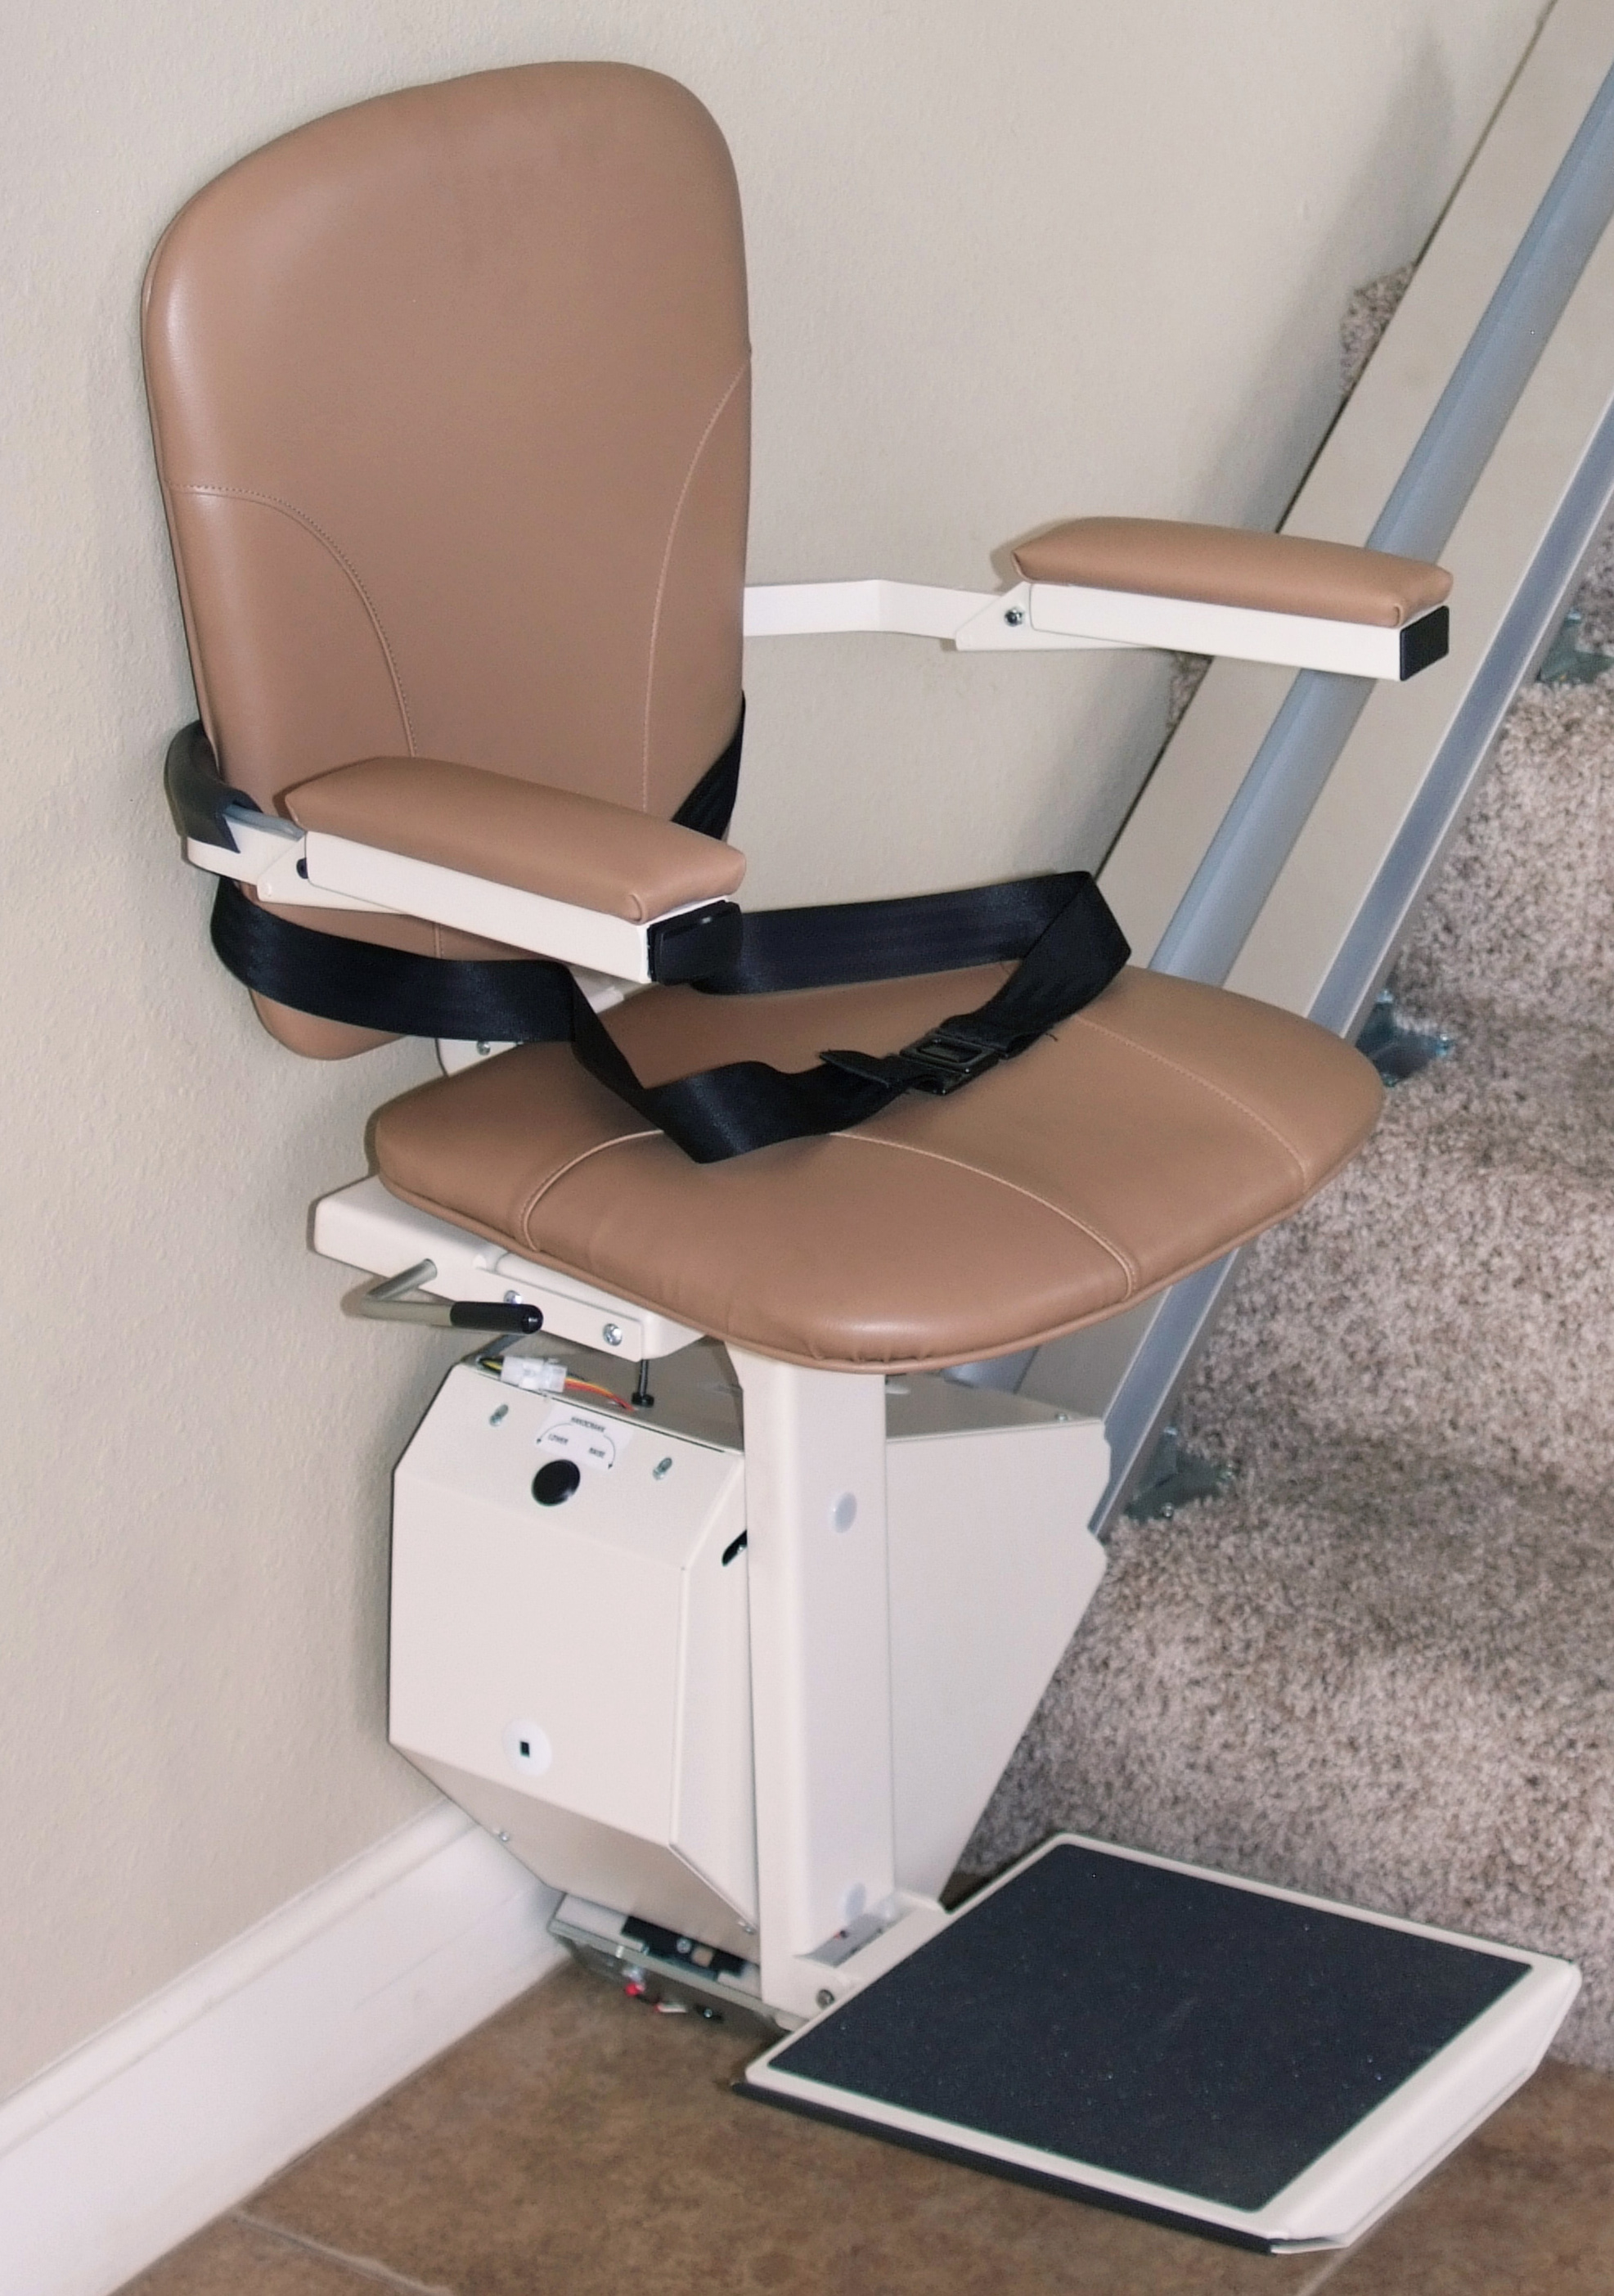 Stair Lift - Staying Home Legacy